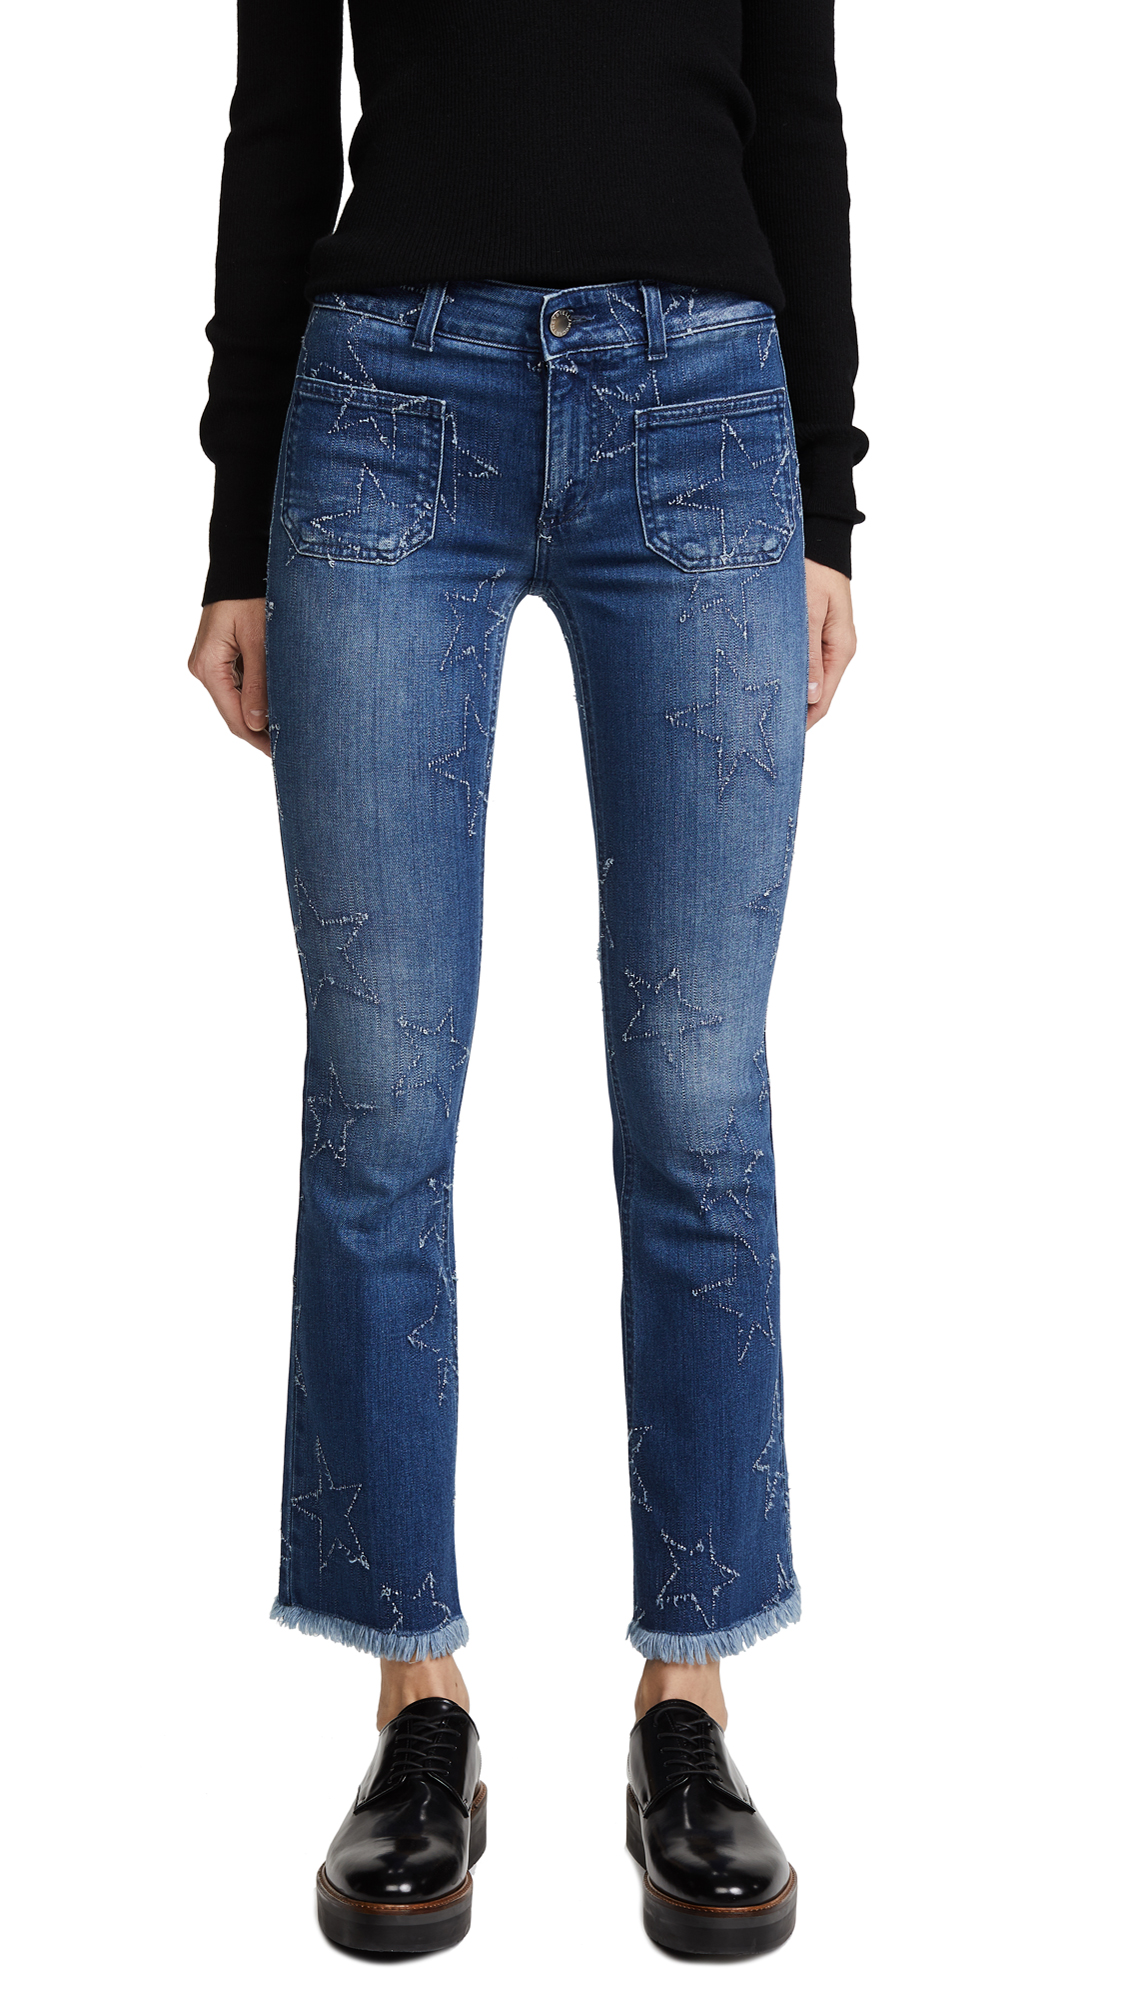 Stella McCartney The Skinny Kick Patch Jeans - Deep Blue